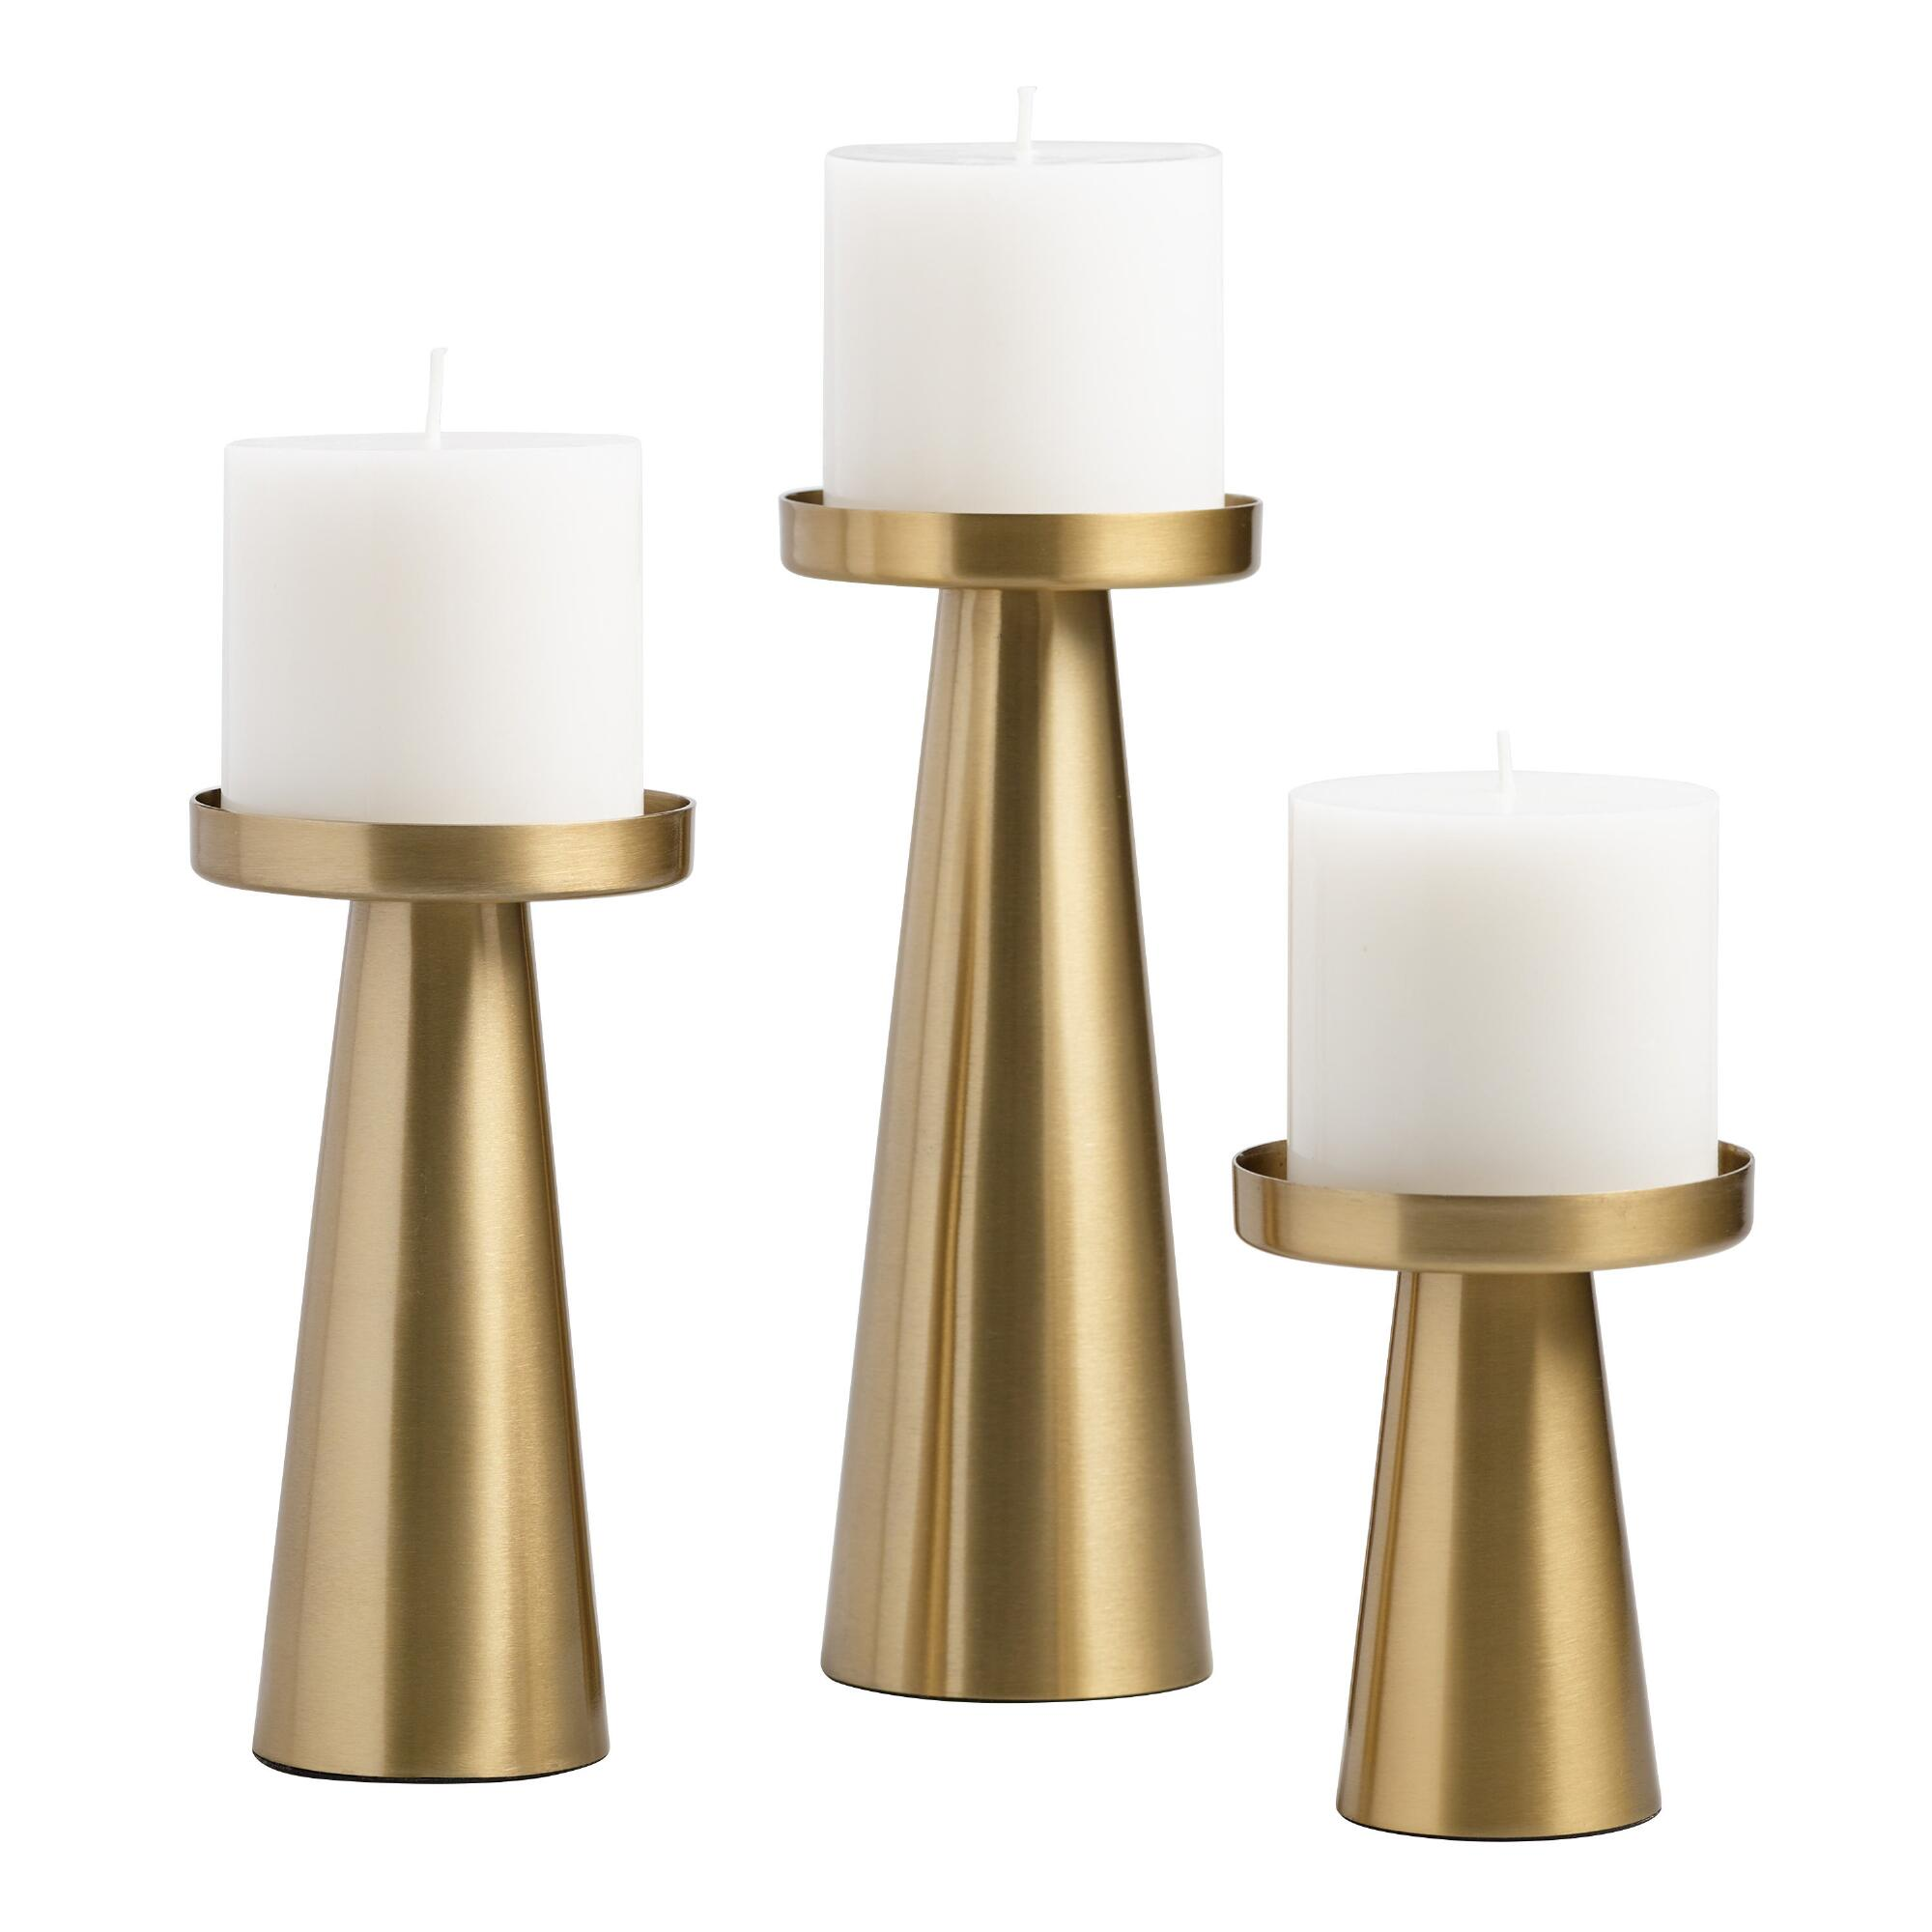 Brushed Gold Metal Contemporary Pillar Candleholder - Small by World Market Small